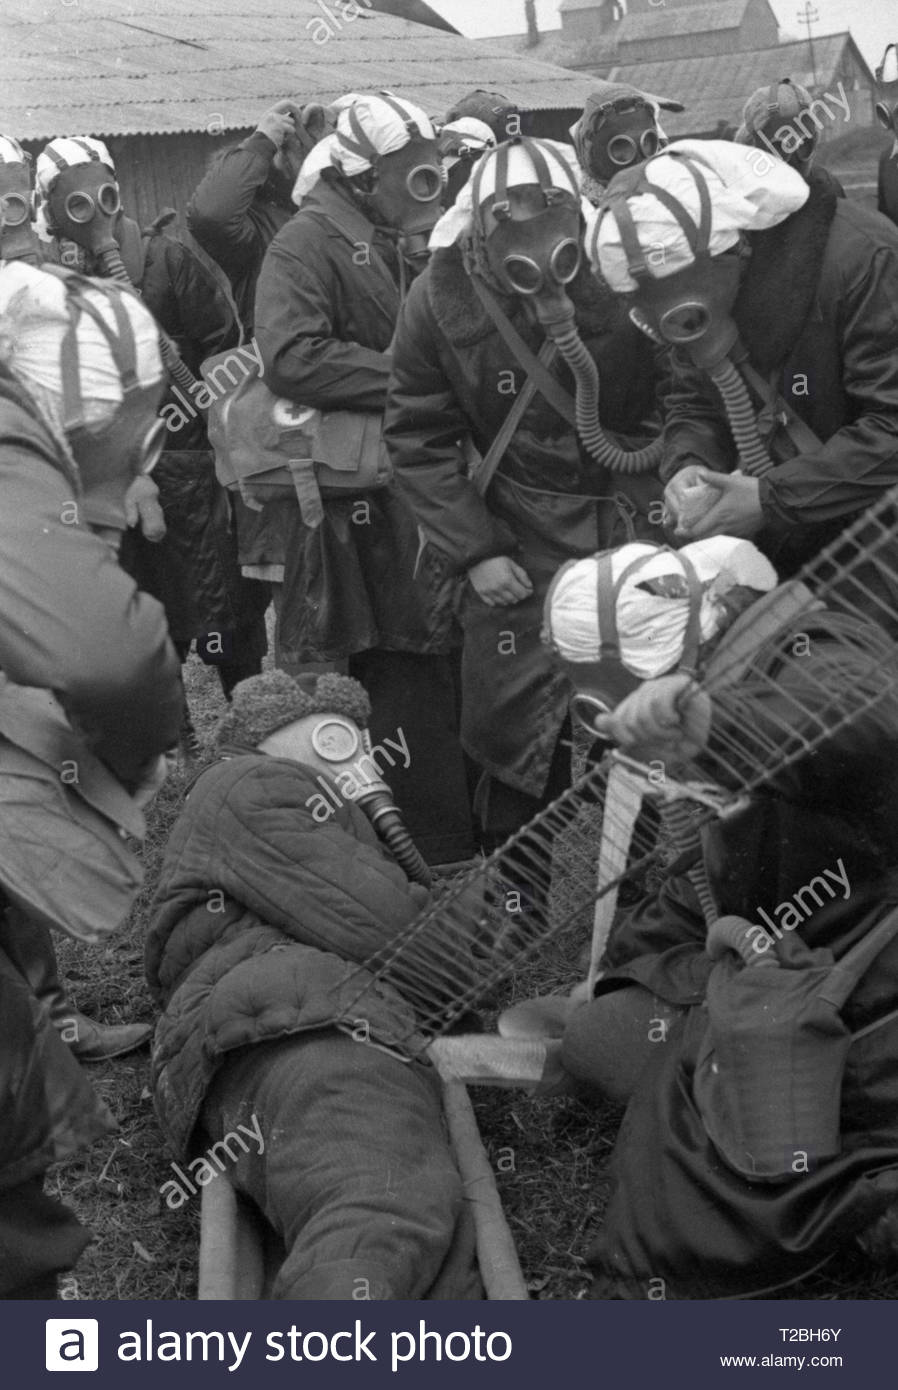 Civil defense exercises. In Soviet times our society was regularly preparing for a chemical attack from the side of capitalist countries. On the photo simulates the situation when chemical attack still occurred. Female nurses in gas masks. They put on a stretcher the alleged victim who is also in a gas mask. Women provide him with first aid. Stock Photo